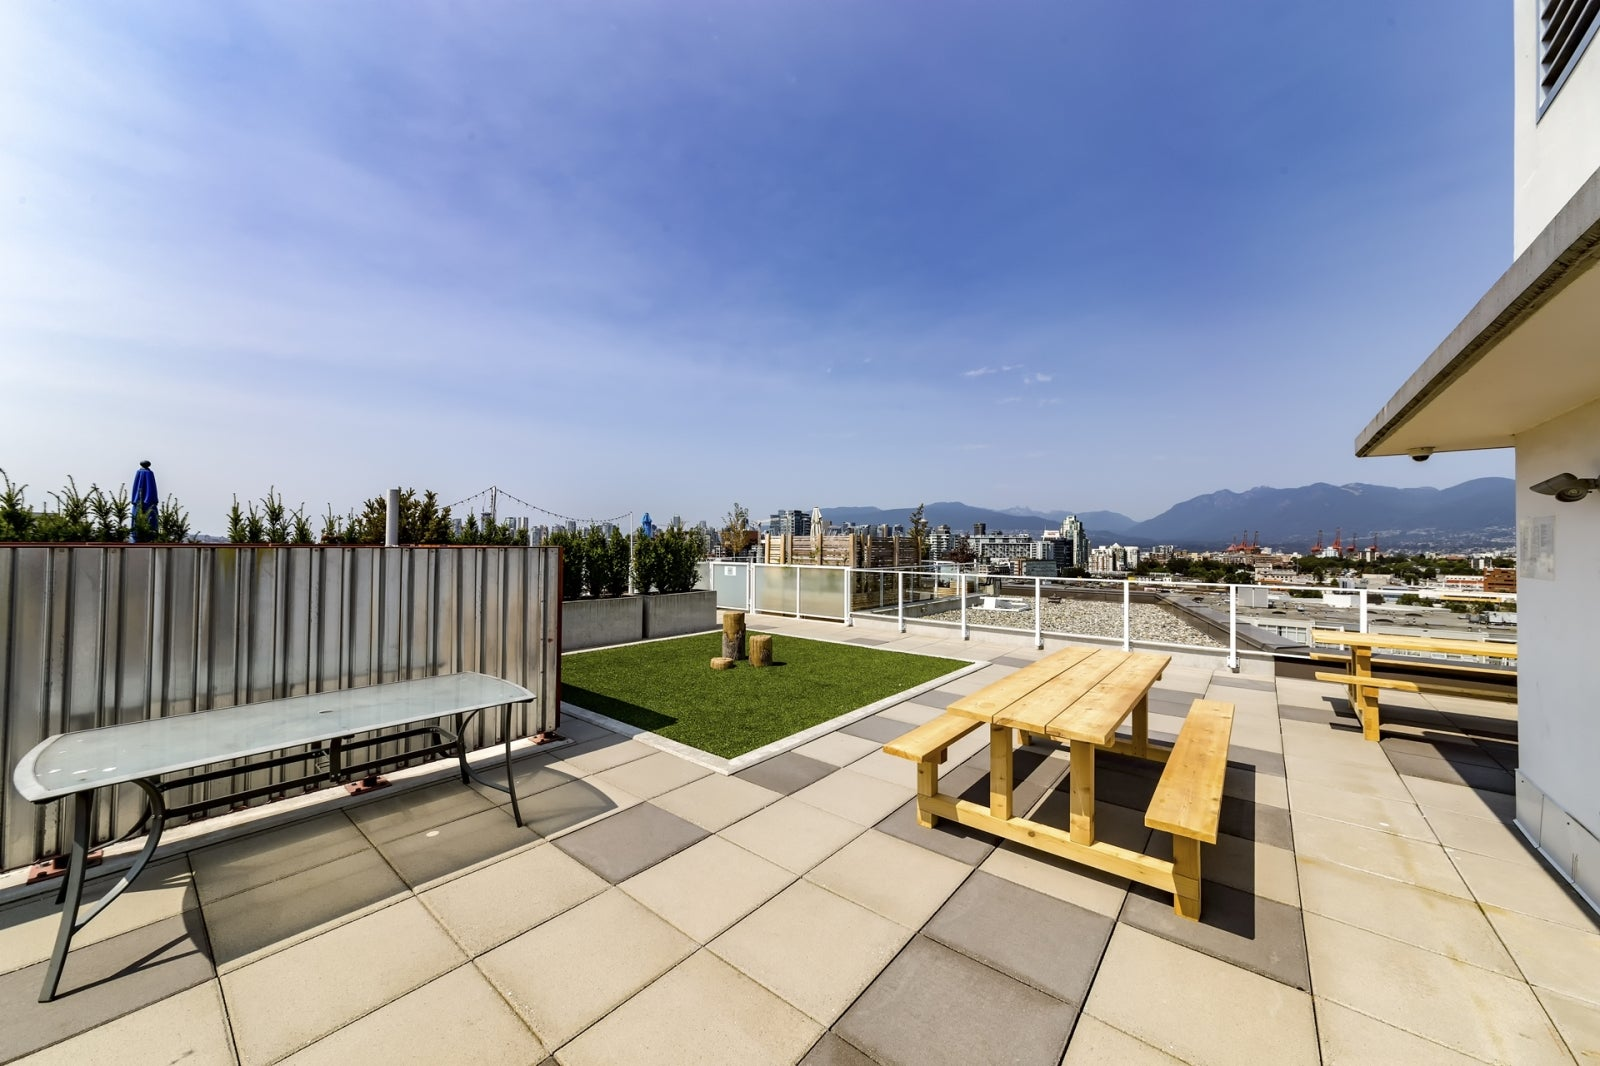 405 311 E 6TH ST - Rooftop Deck